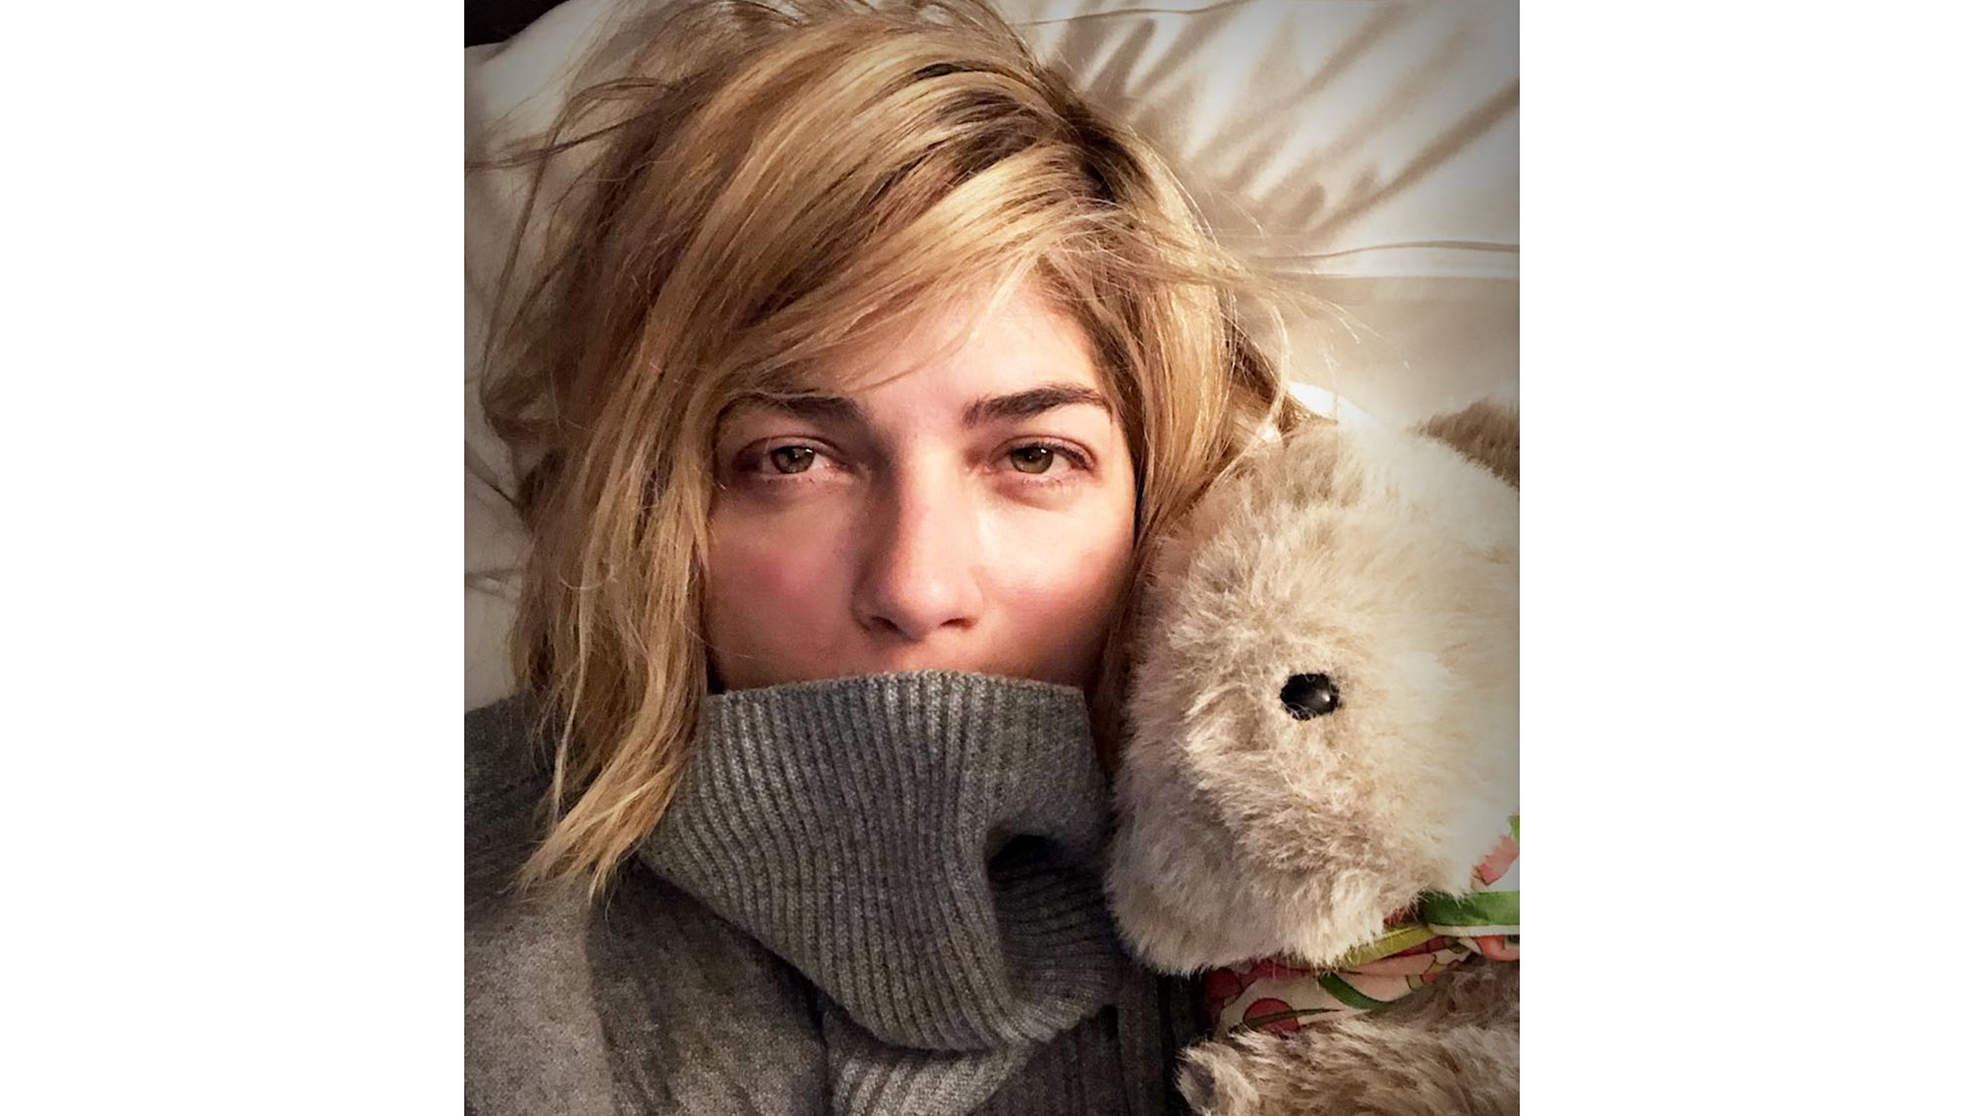 Selma Blair Opens Up About Life with MS in Candid Post: 'I Choke with the Pain of What I Have Lost'